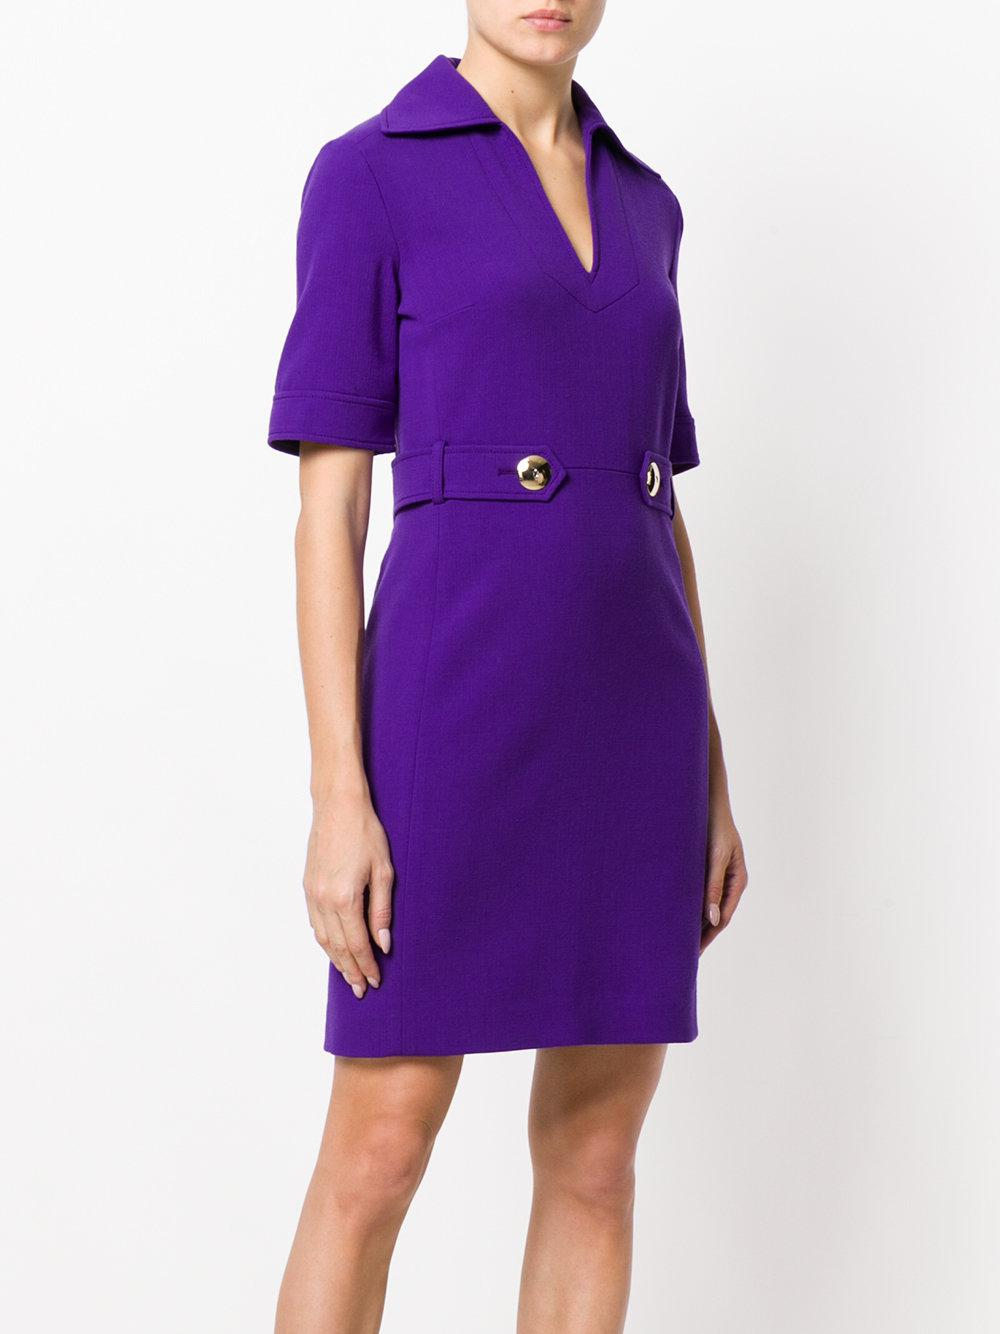 fitted tailored dress - Pink & Purple Emilio Pucci Top Quality For Sale 5w6SXzw